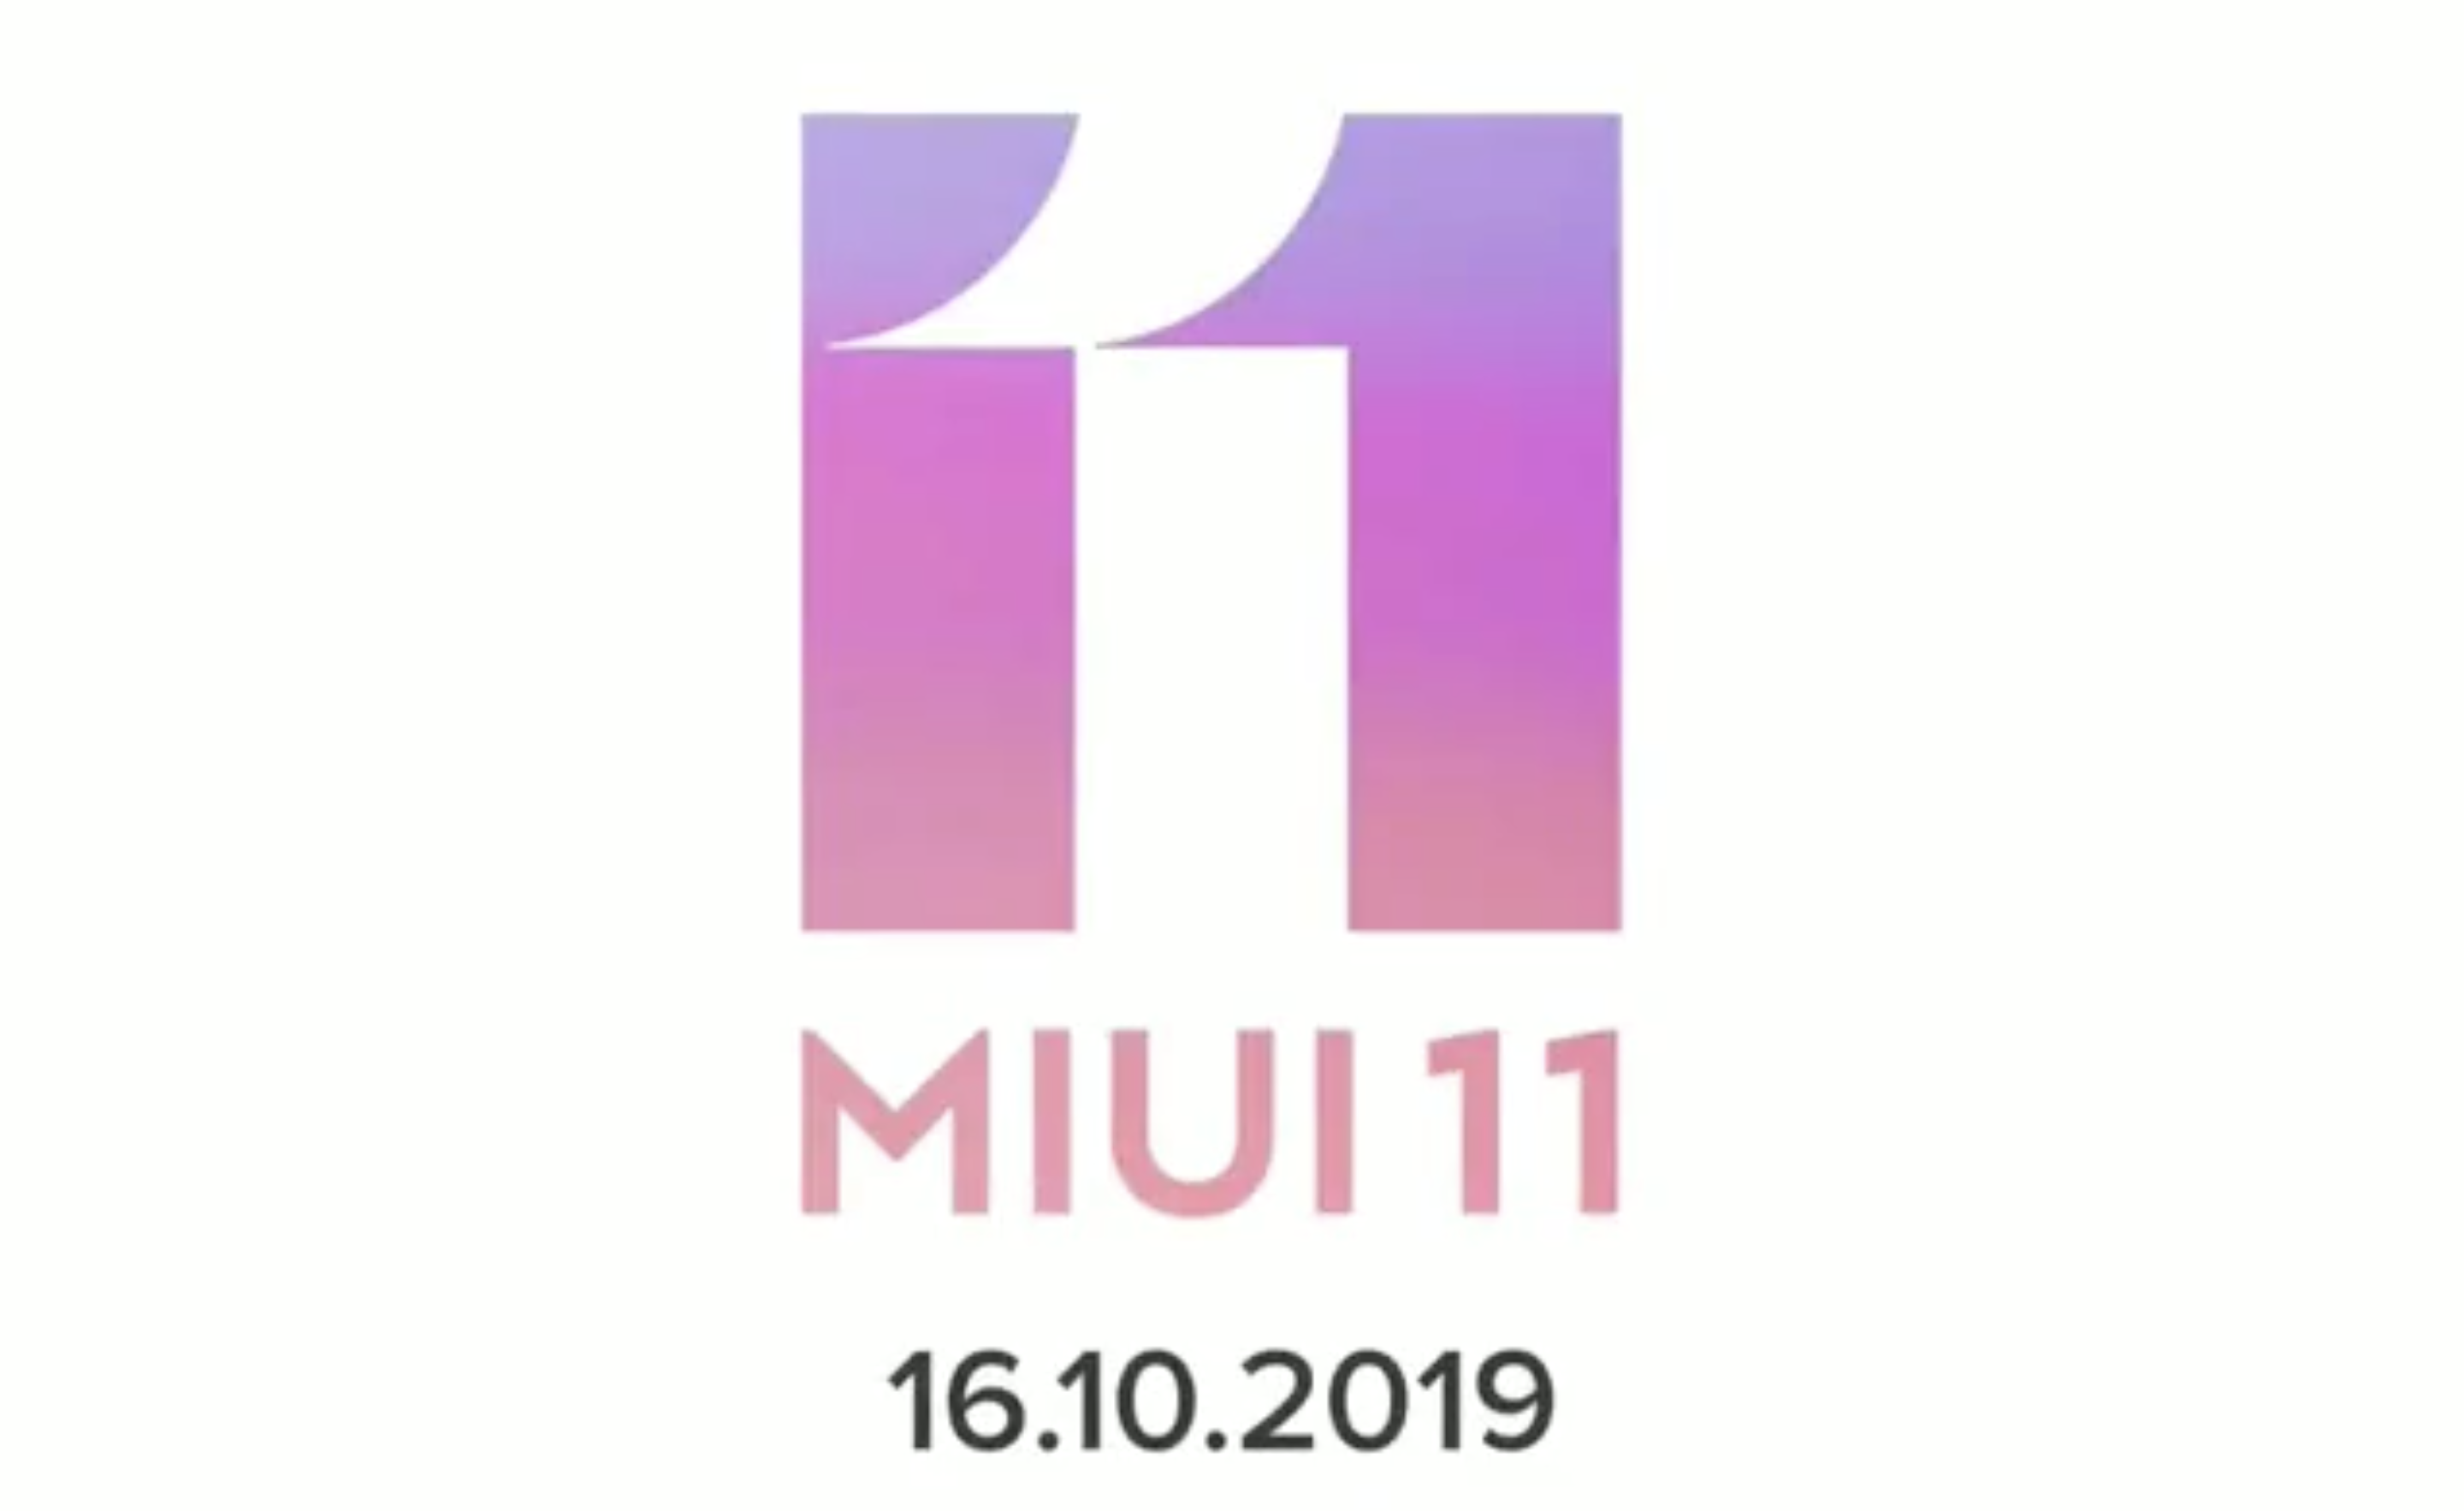 [Update: Rollout time table] MIUI 11 to start rolling out globally on October 16